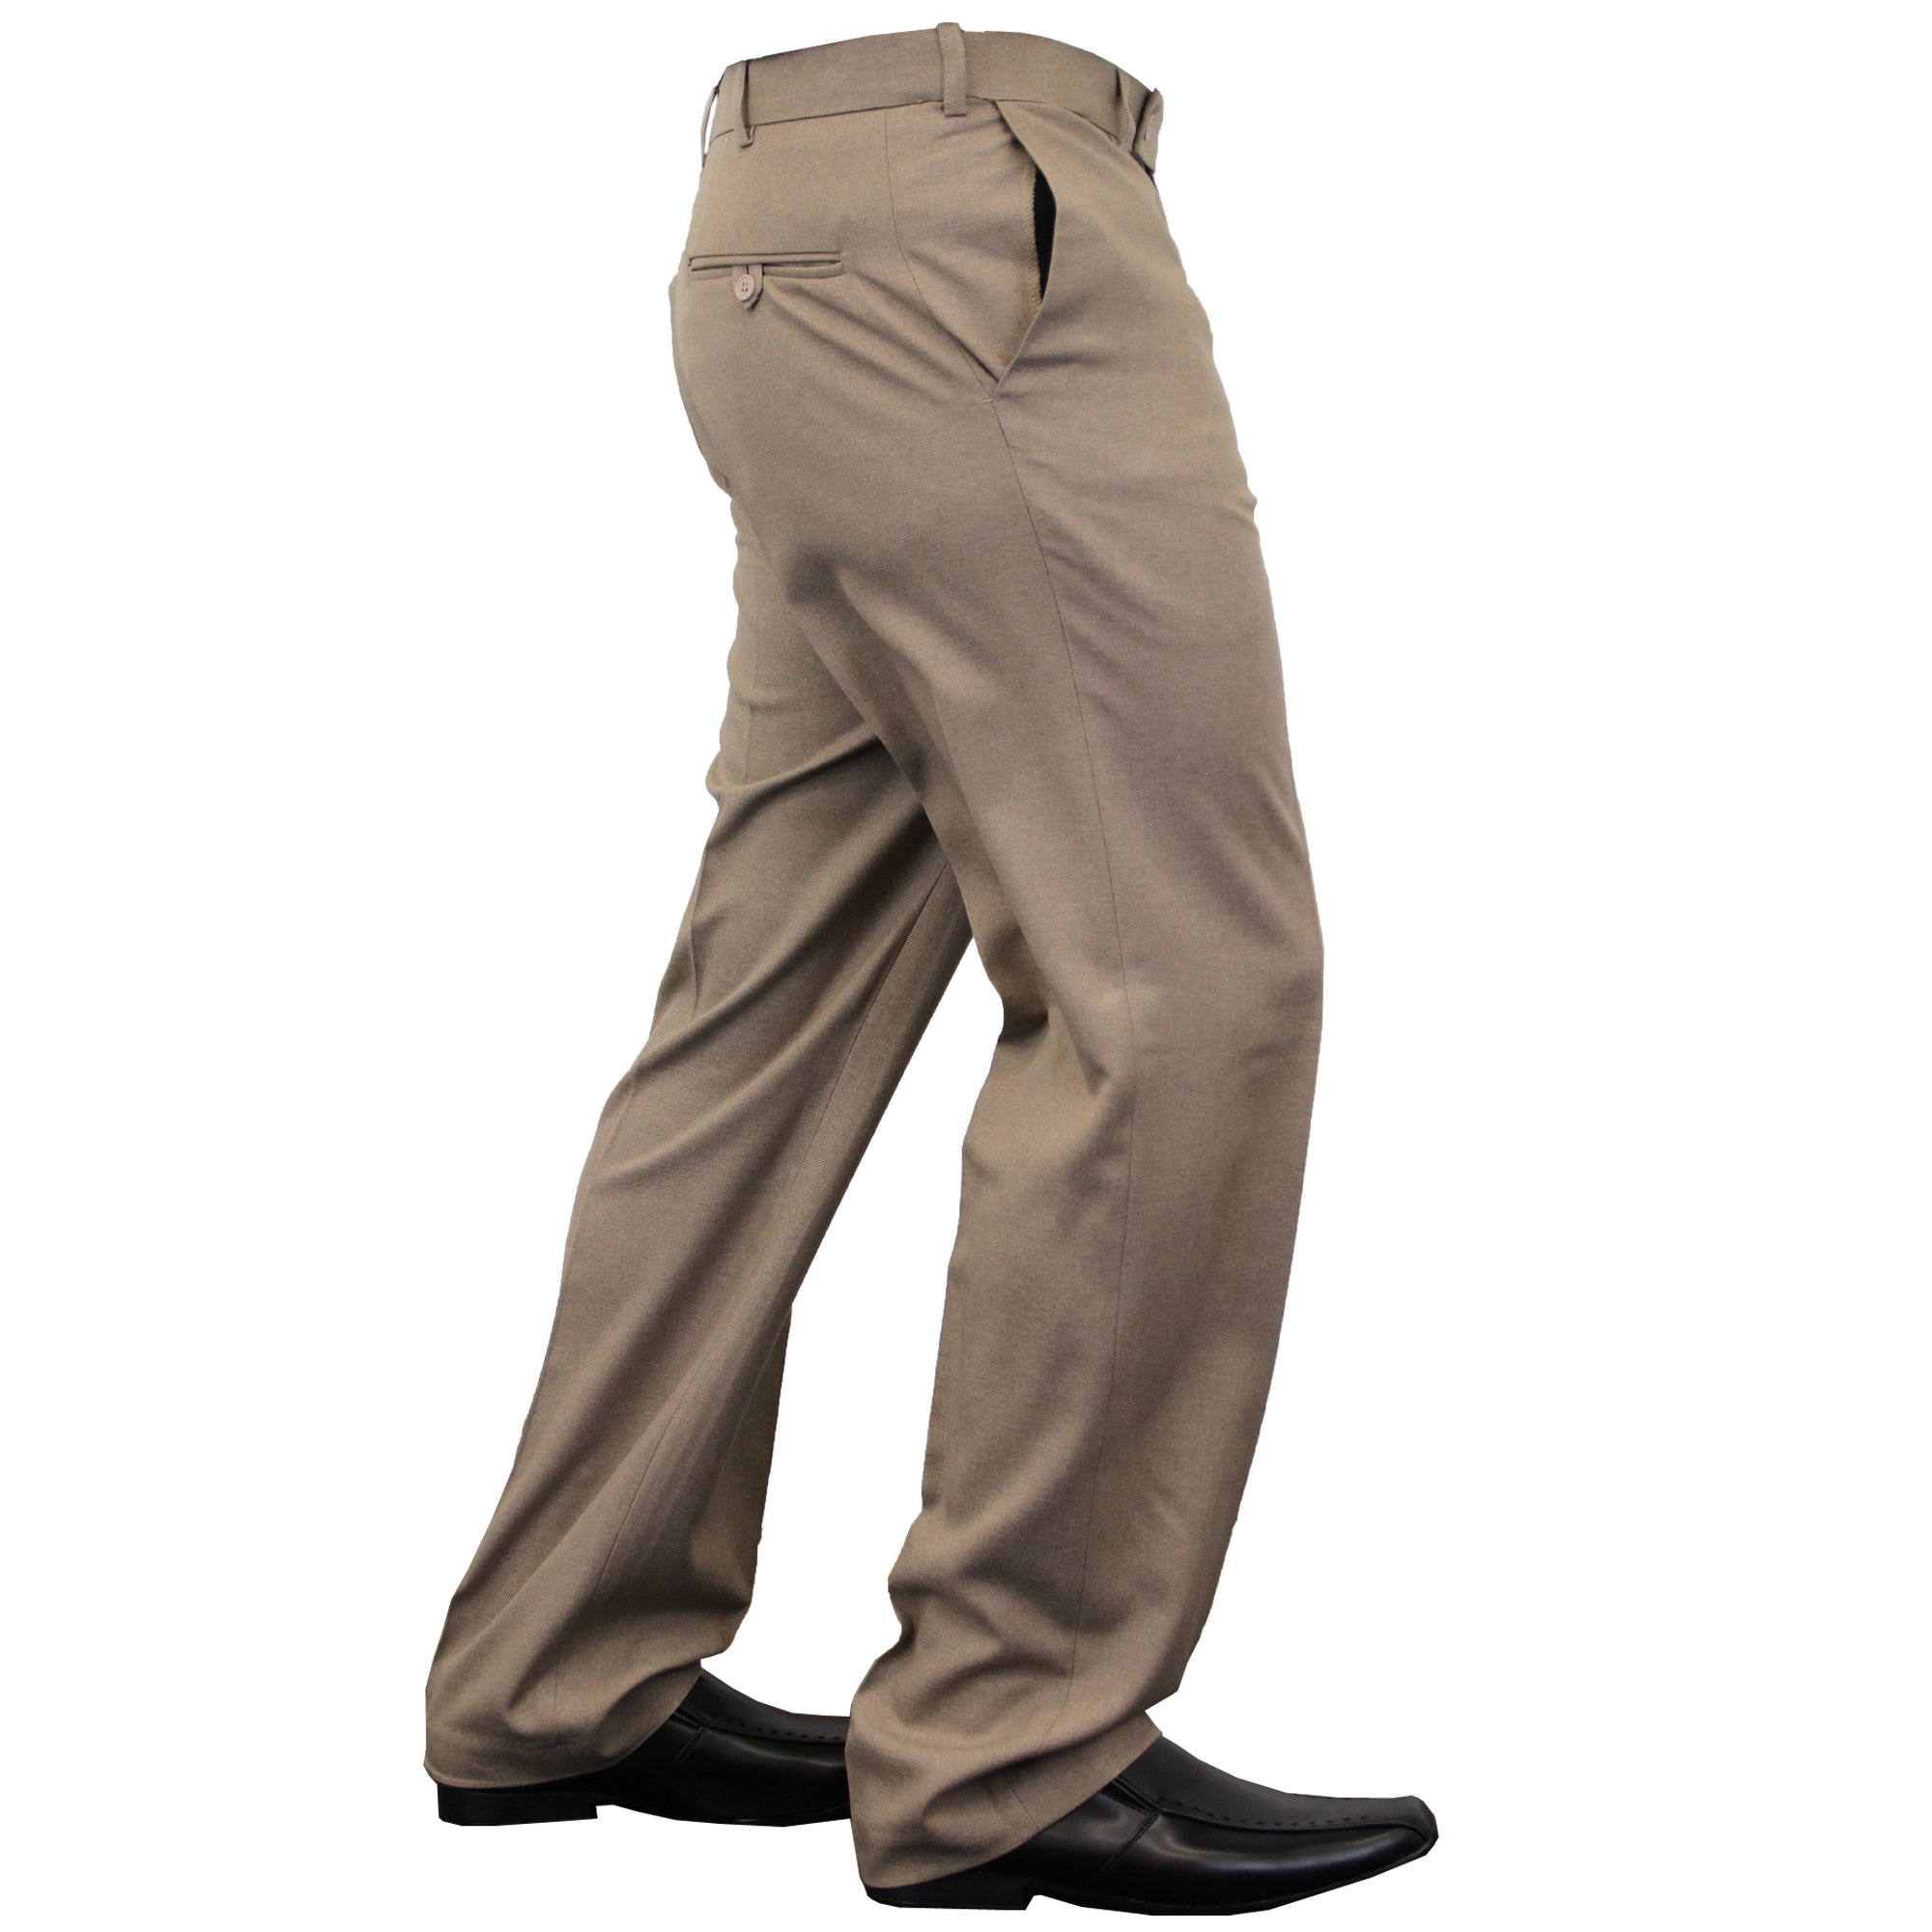 Samuel Windsor men's pants offer exceptional quality and value. Choose from a variety of colors and styles including charcoal wool pants, flat-fronted brick chinos and dark olive cords. From formal suit pants to more leisurely cotton moleskin pants, we have quality pants for every gentlemen's pursuit.